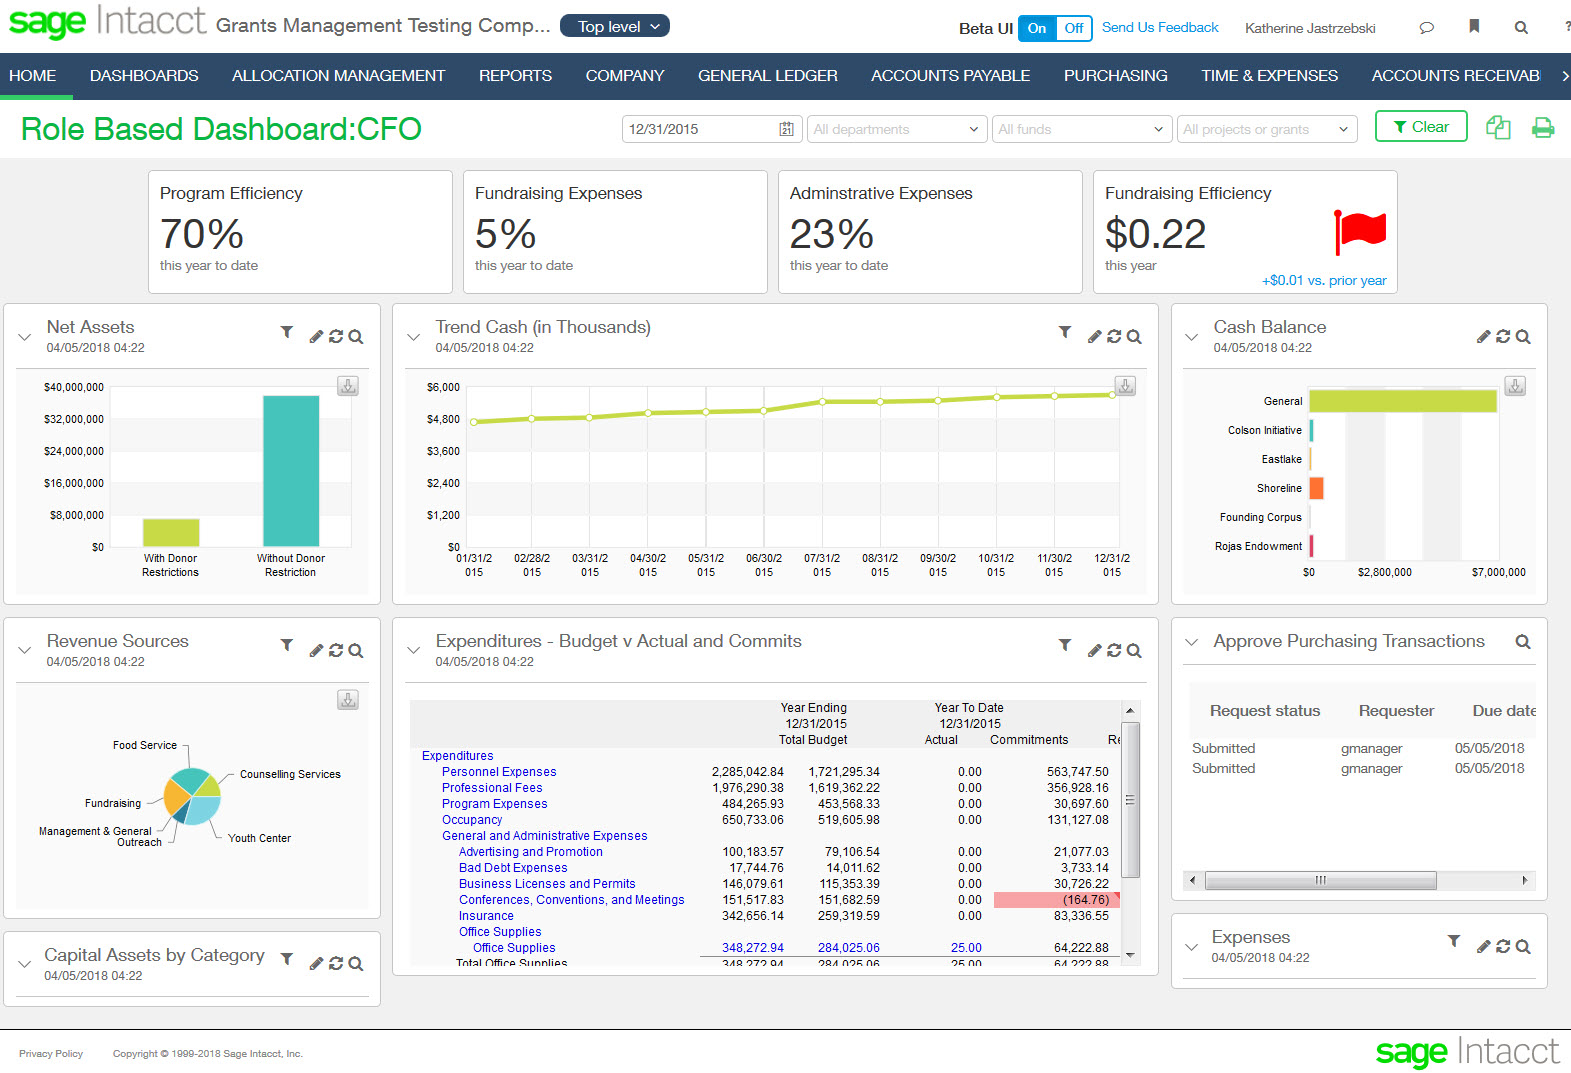 Sage Intacct Not for Profit Role Based Dashboard